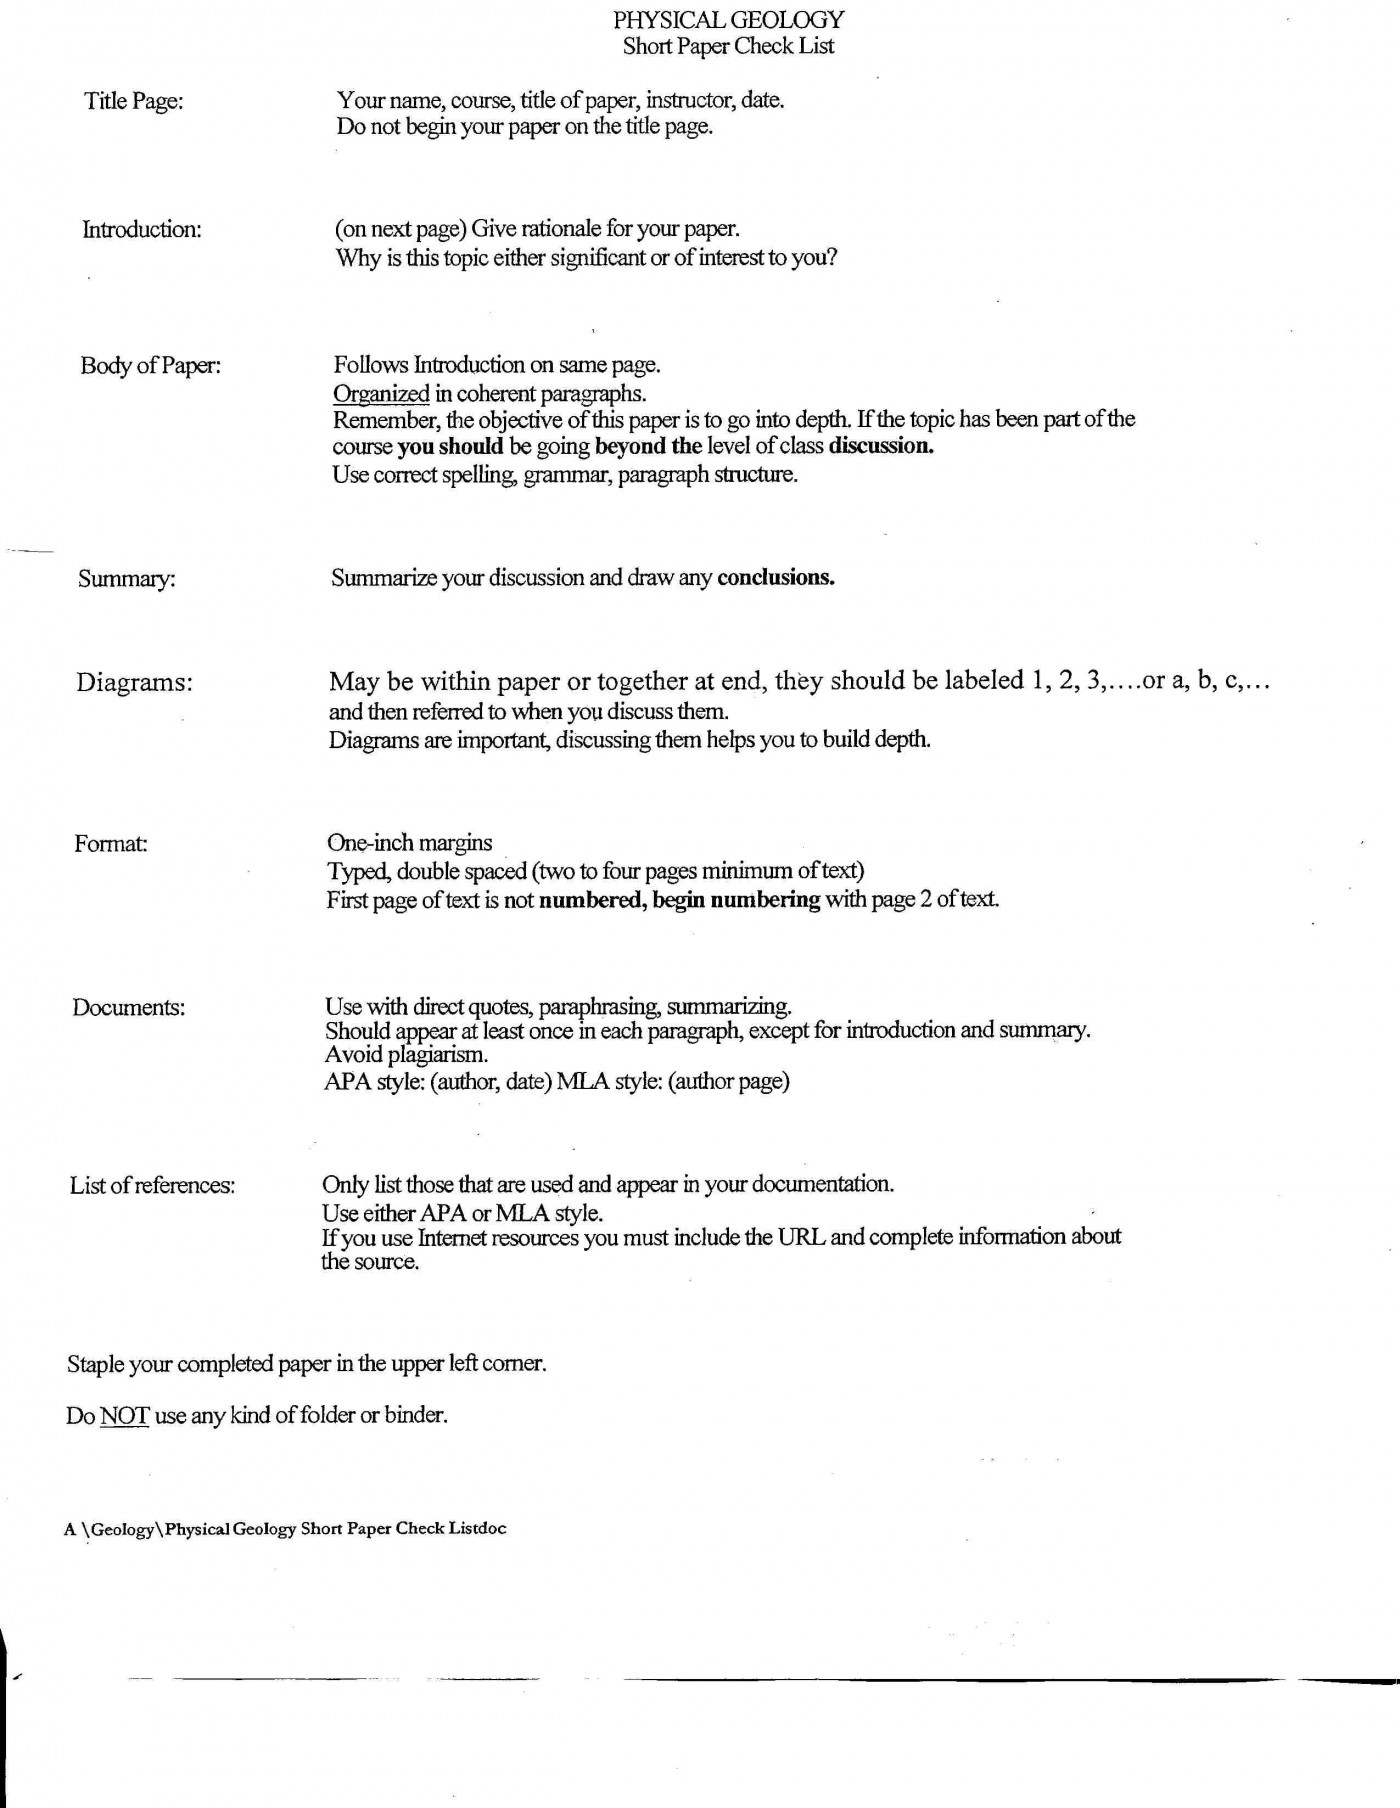 001 Short Paper Checklist Research Chemistry Formidable Topics Physical Ap 1400